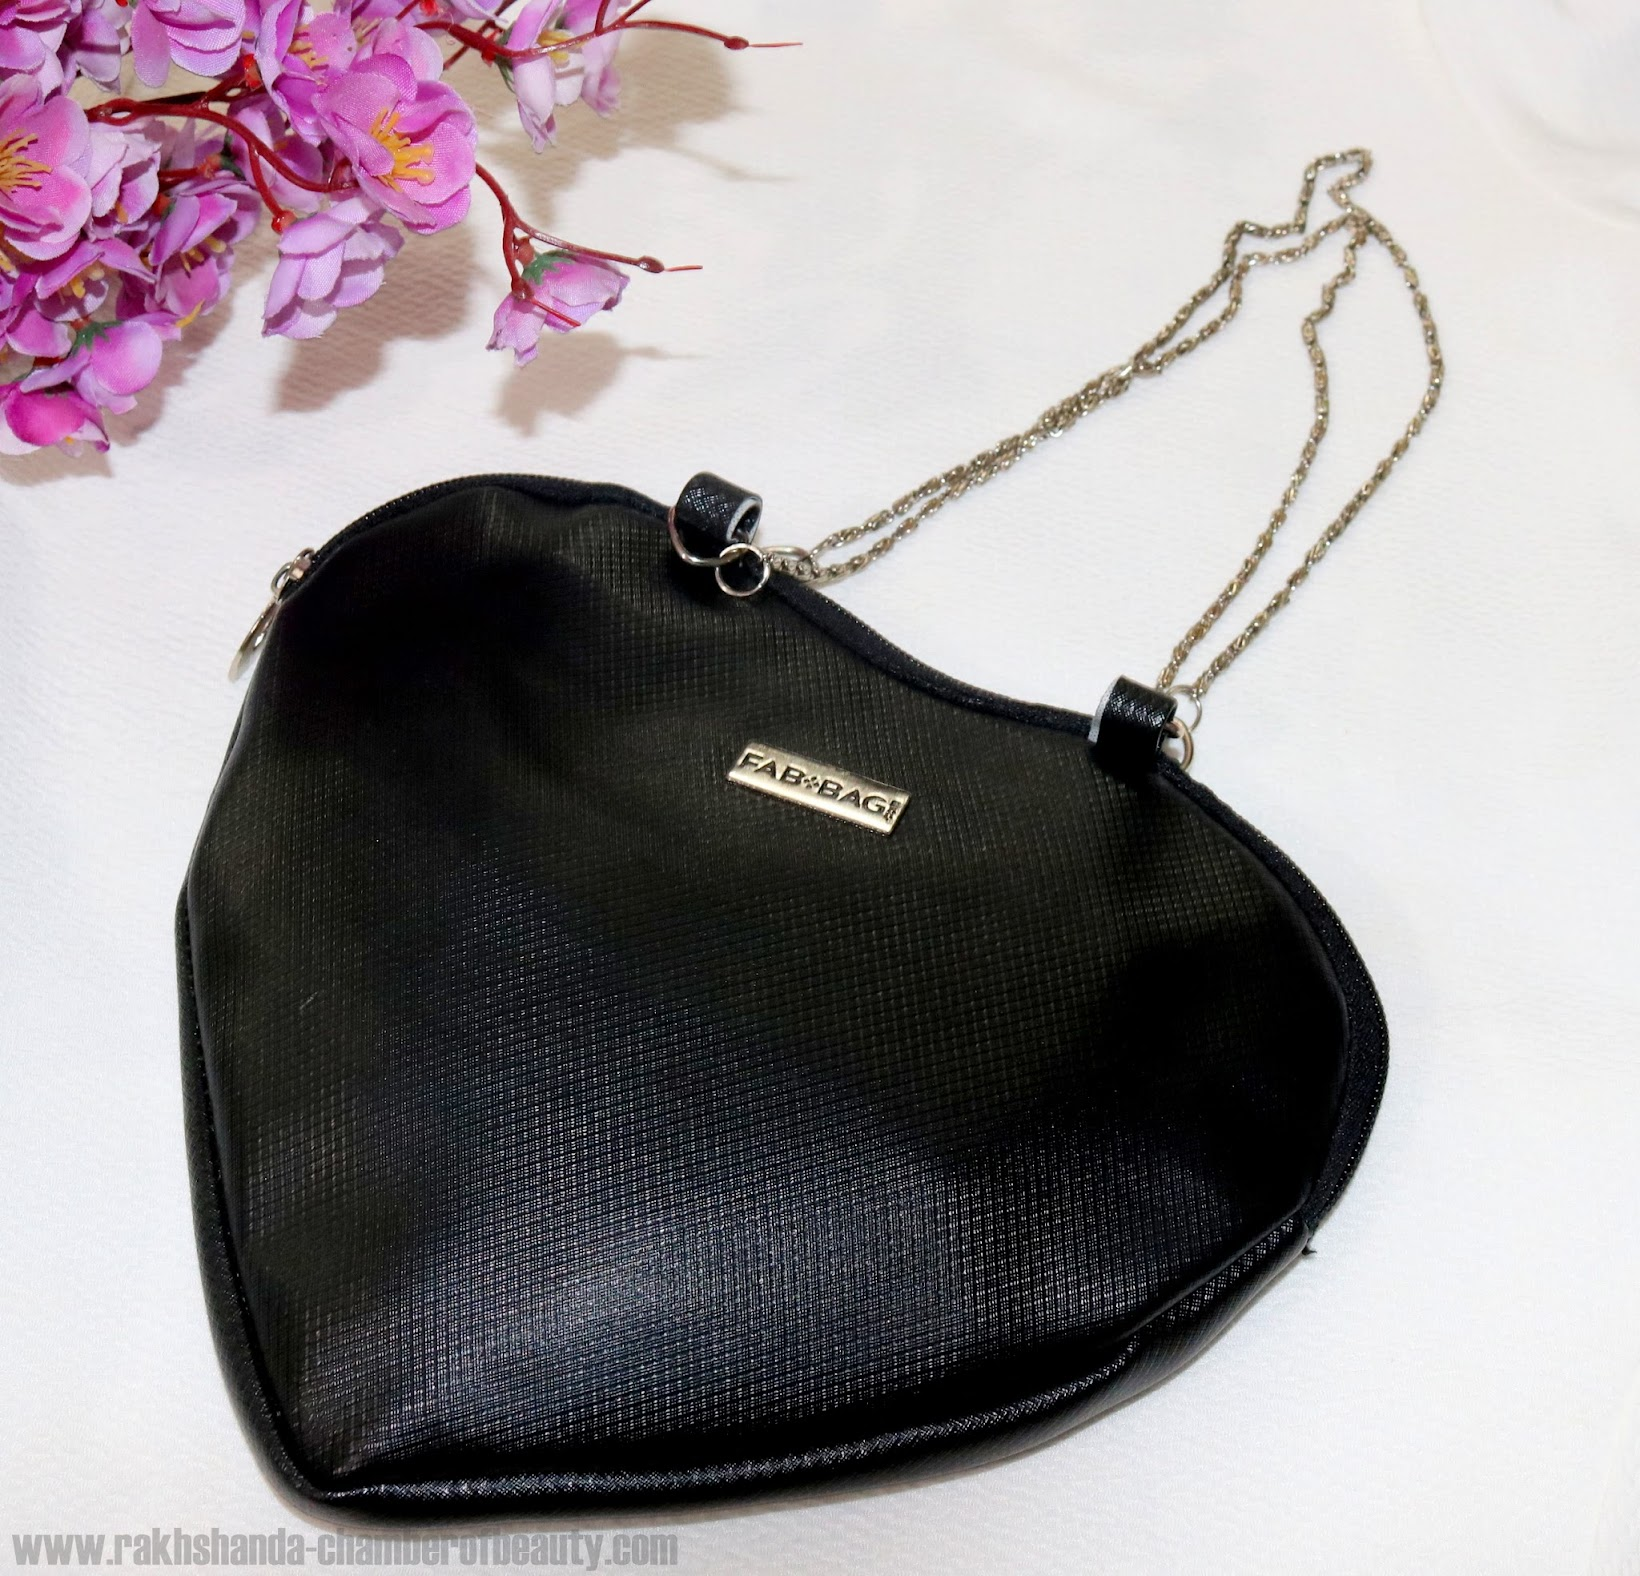 December 2015 Fab bag review